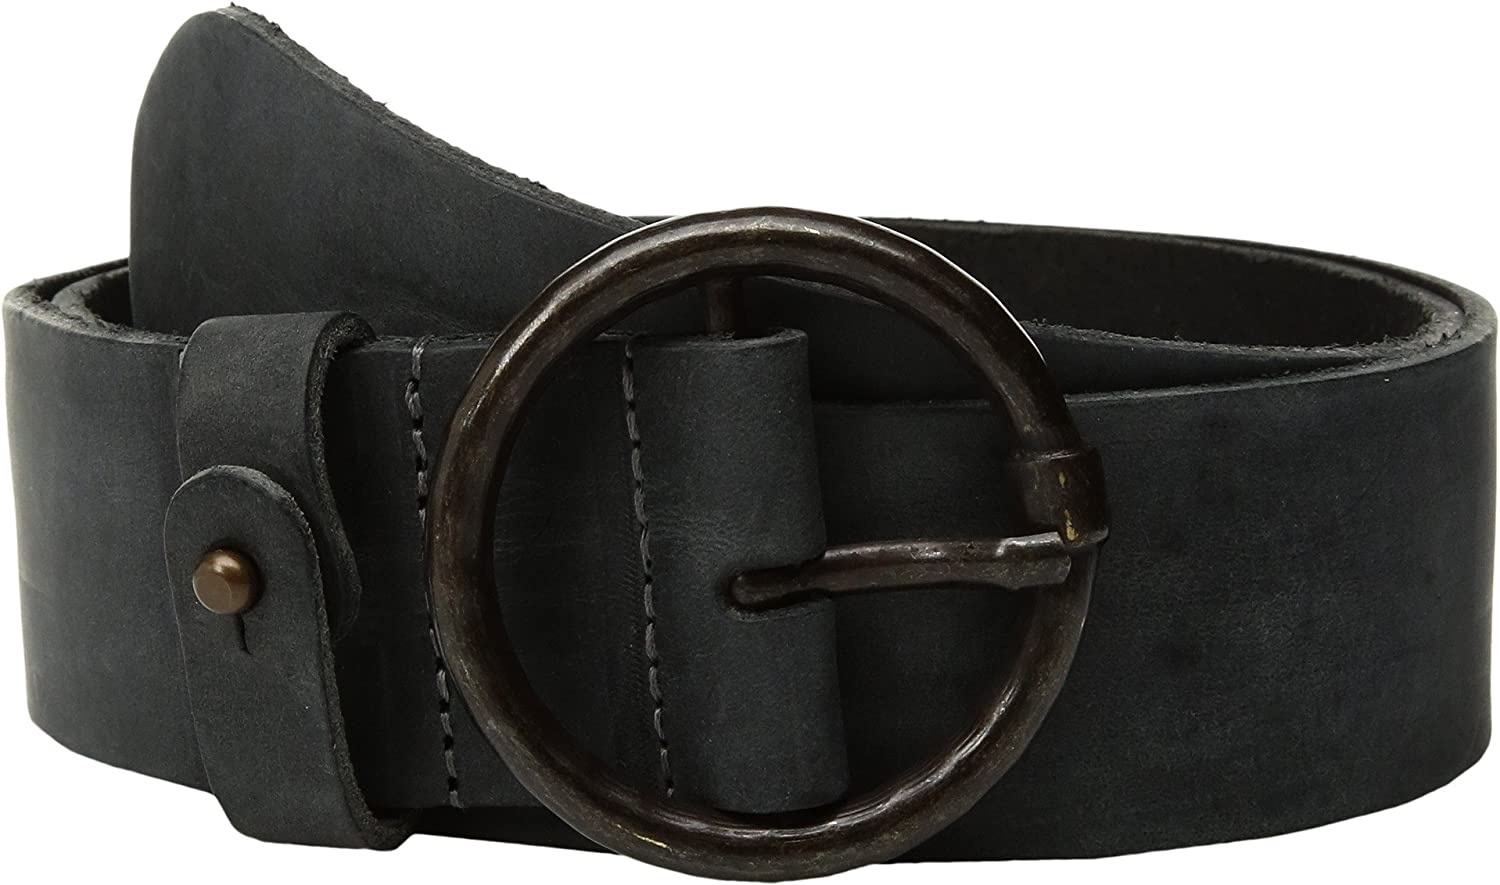 Amsterdam Heritage Leather Belt 45501 Distressed Black belt